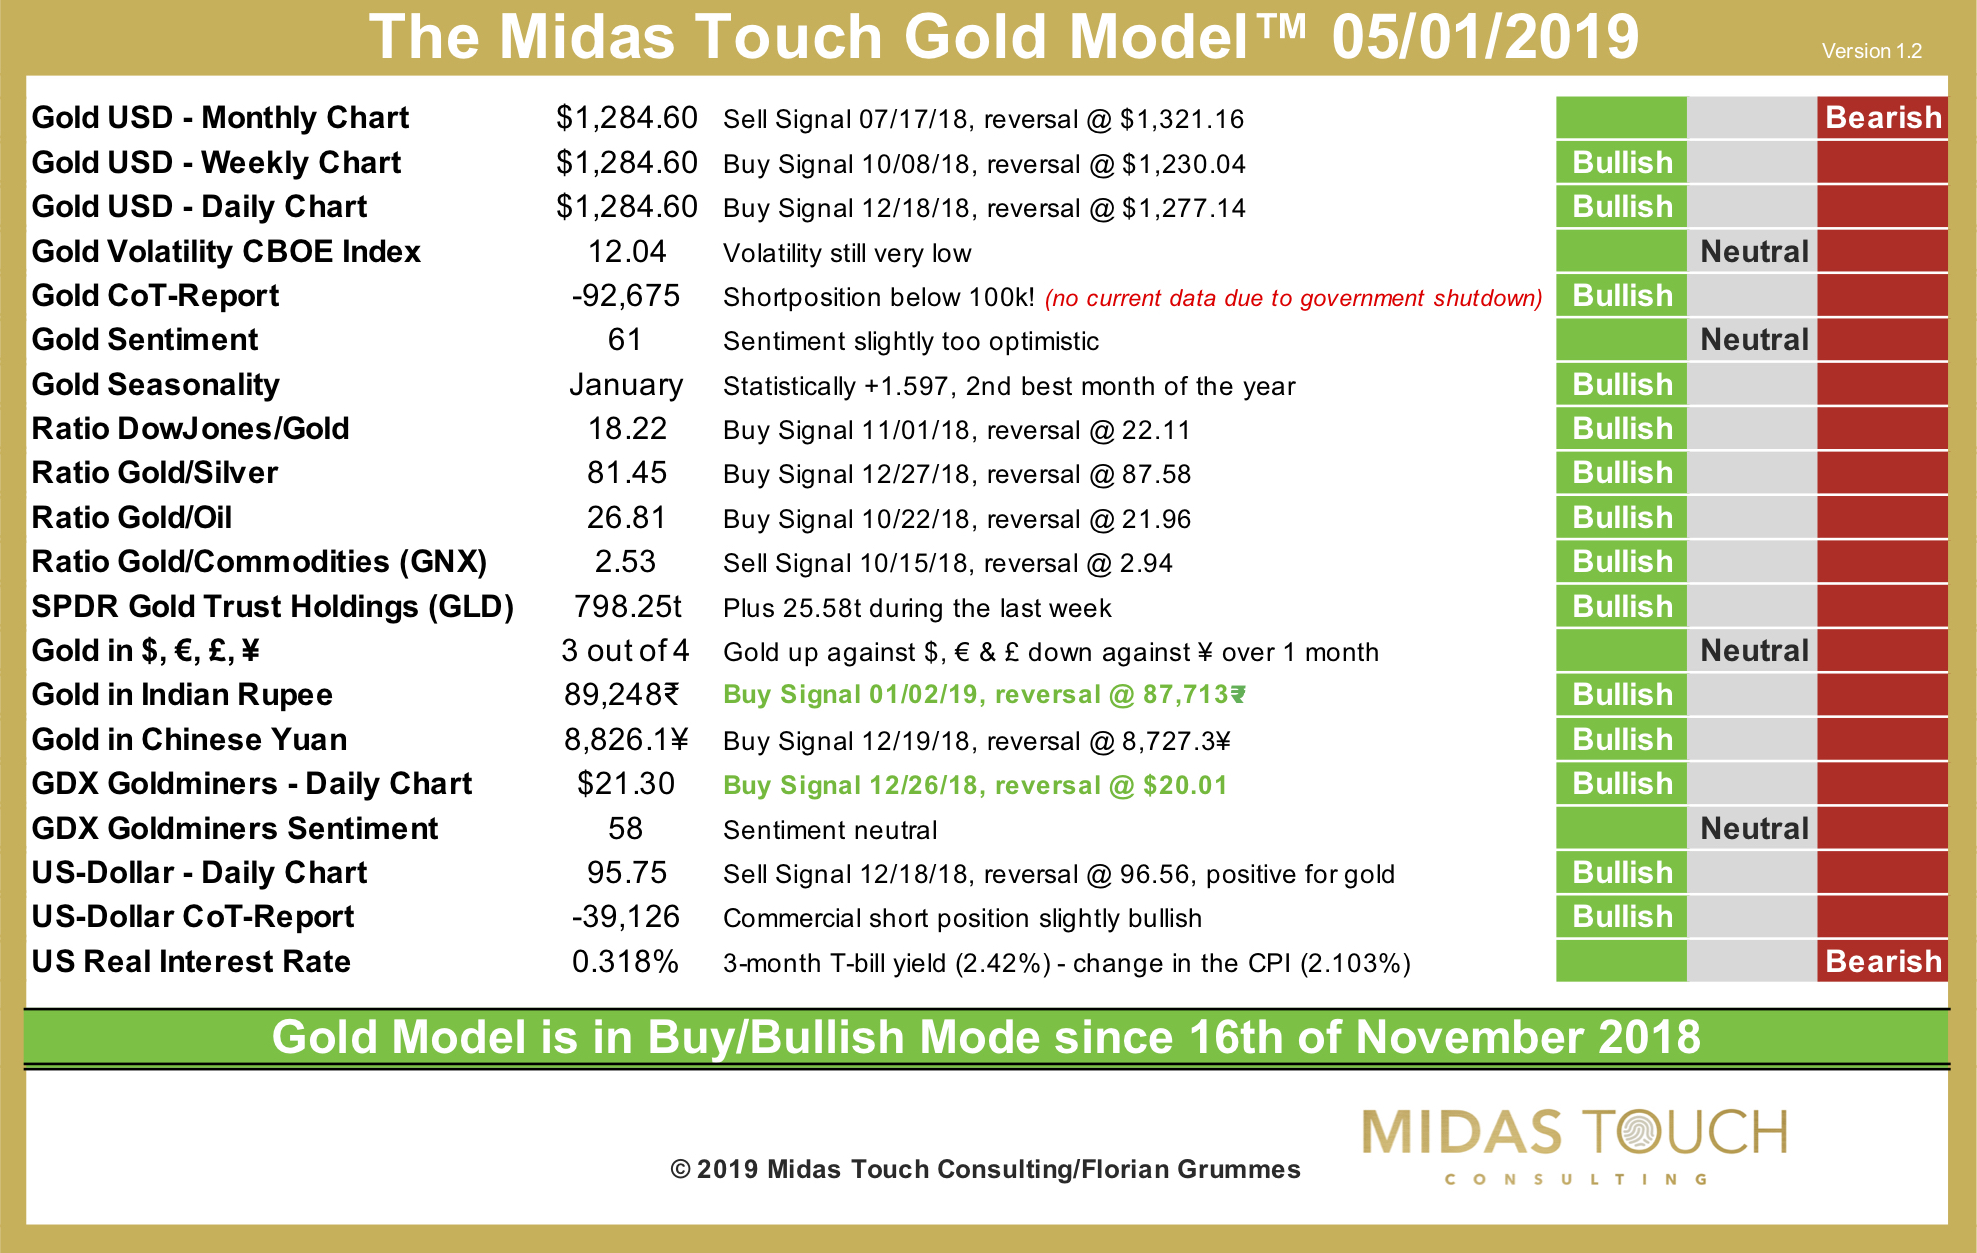 The Midas Touch Gold Model™ as of January 5th, 2019